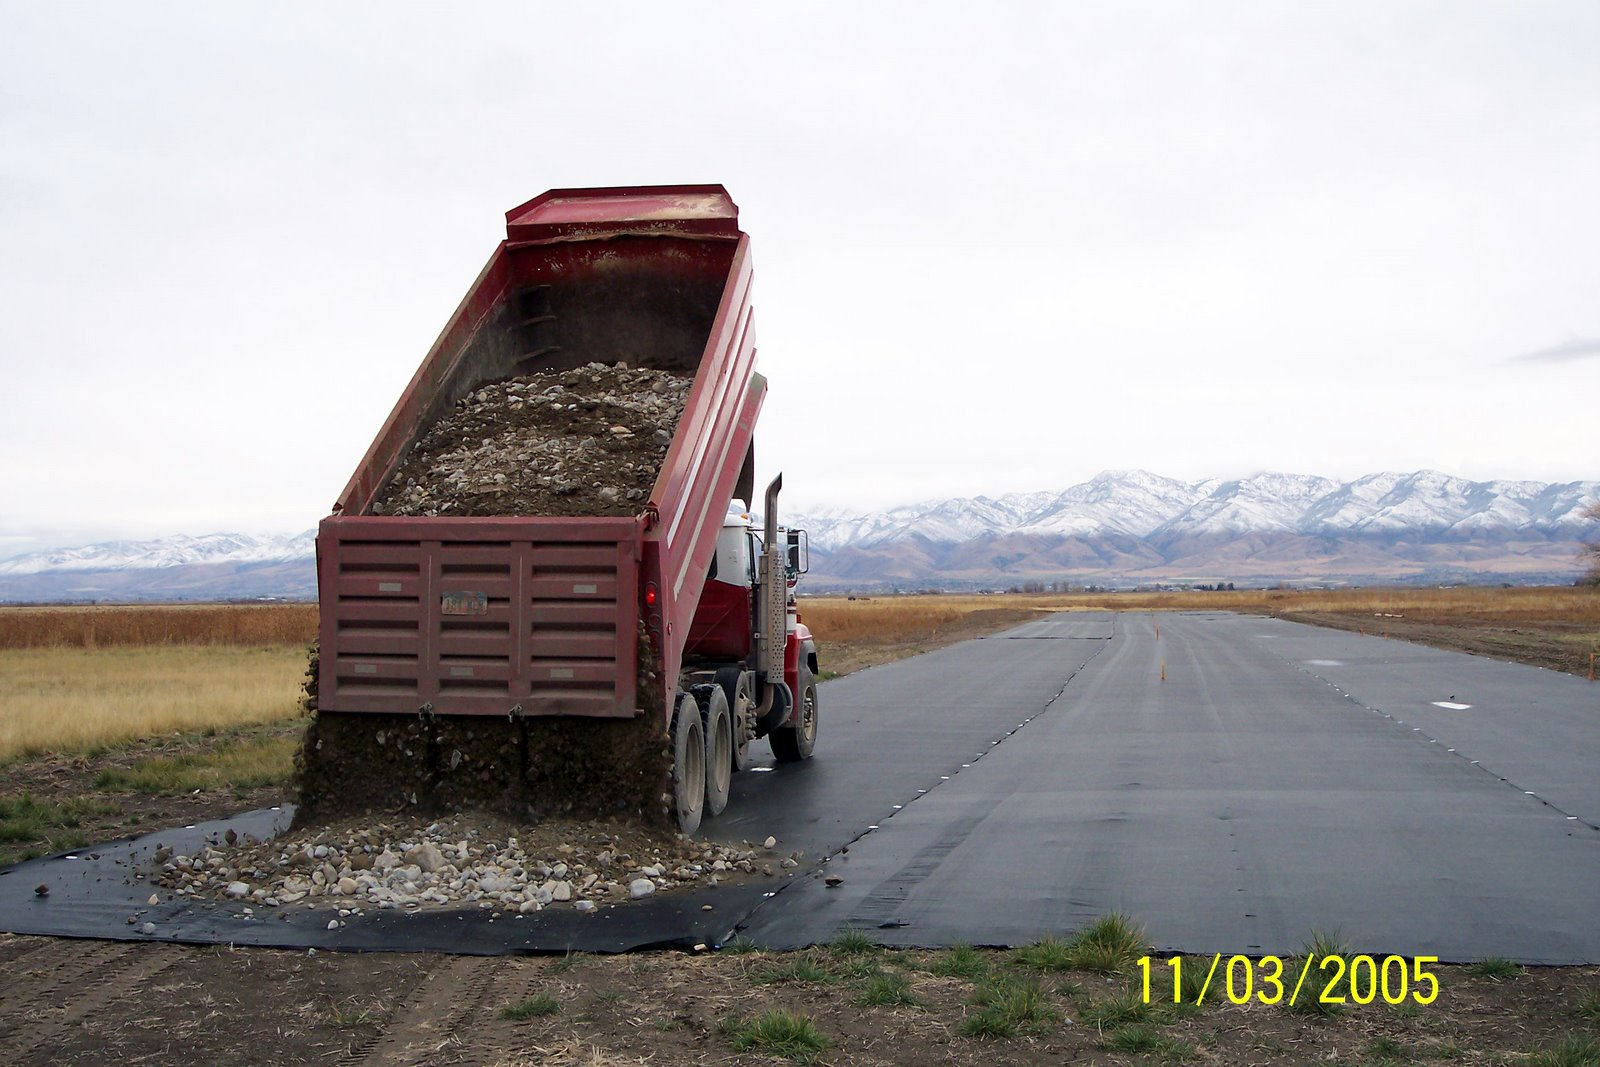 THE FIRST LOAD OF PIT RUN GRAVEL ON THE RUNWAY....A MONUMENTAL MOMENT FOR BRCC.